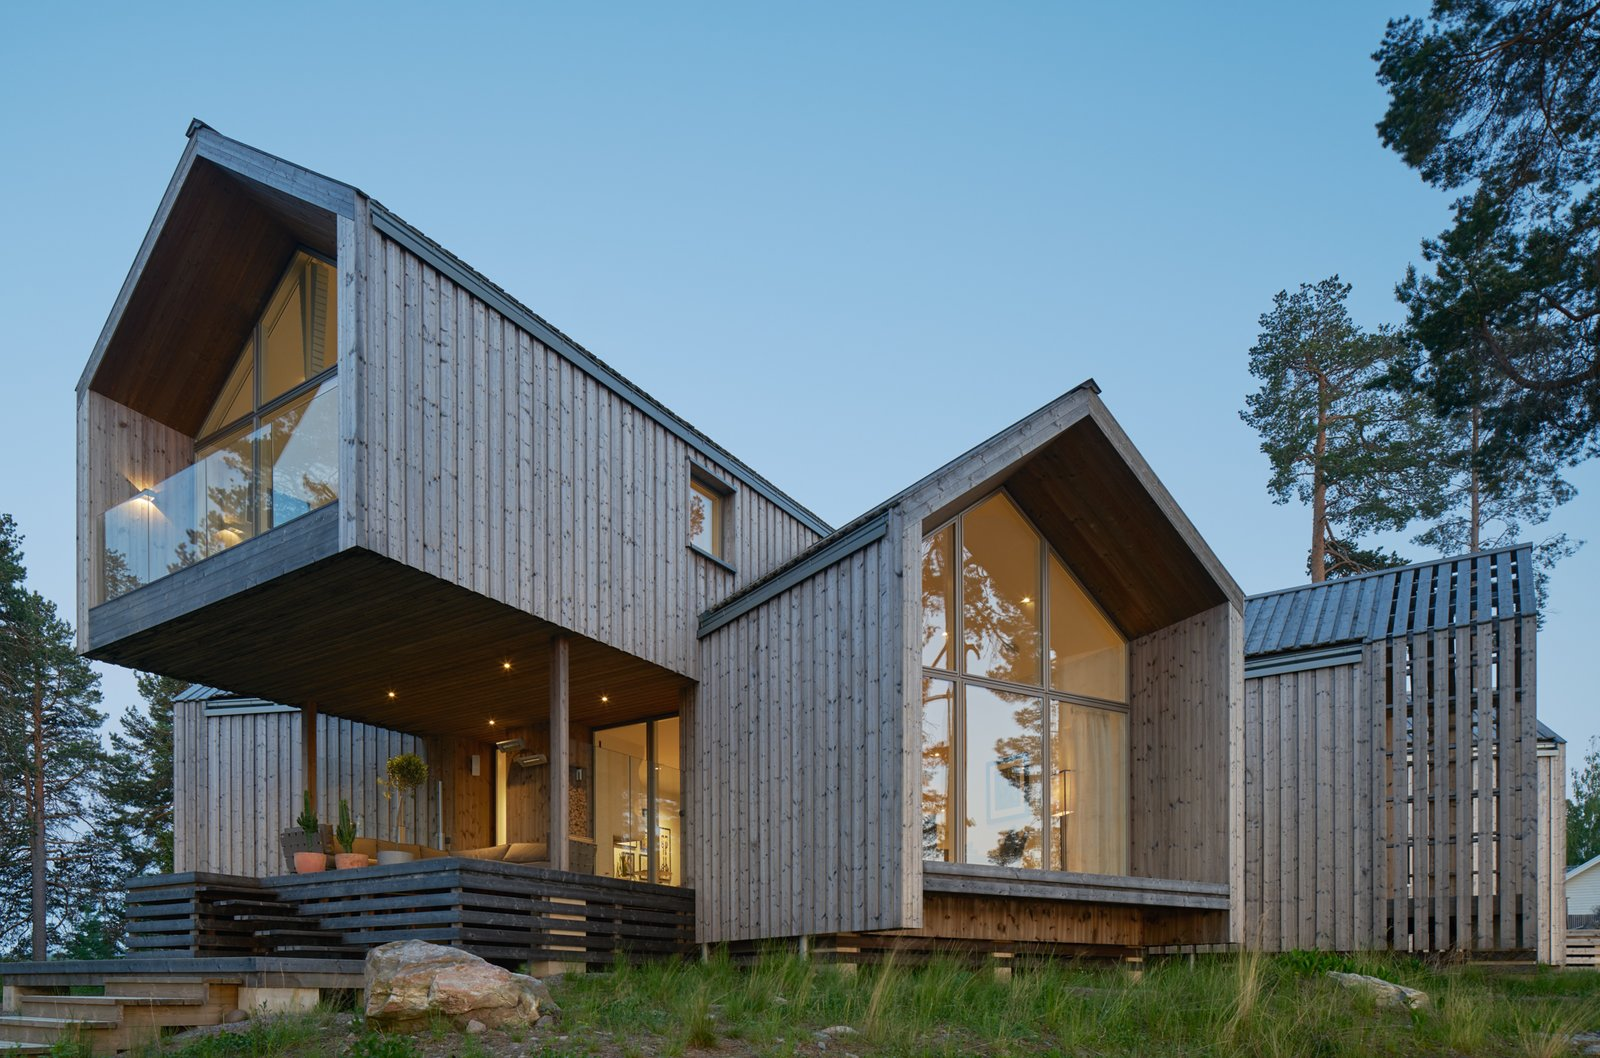 Exterior, Cabin Building Type, House Building Type, Gable RoofLine, Glass Siding Material, Wood Siding Material, and Metal Roof Material  Best Photos from A Swedish Family's Dreamy Villa Fans Out For Lakeside Views